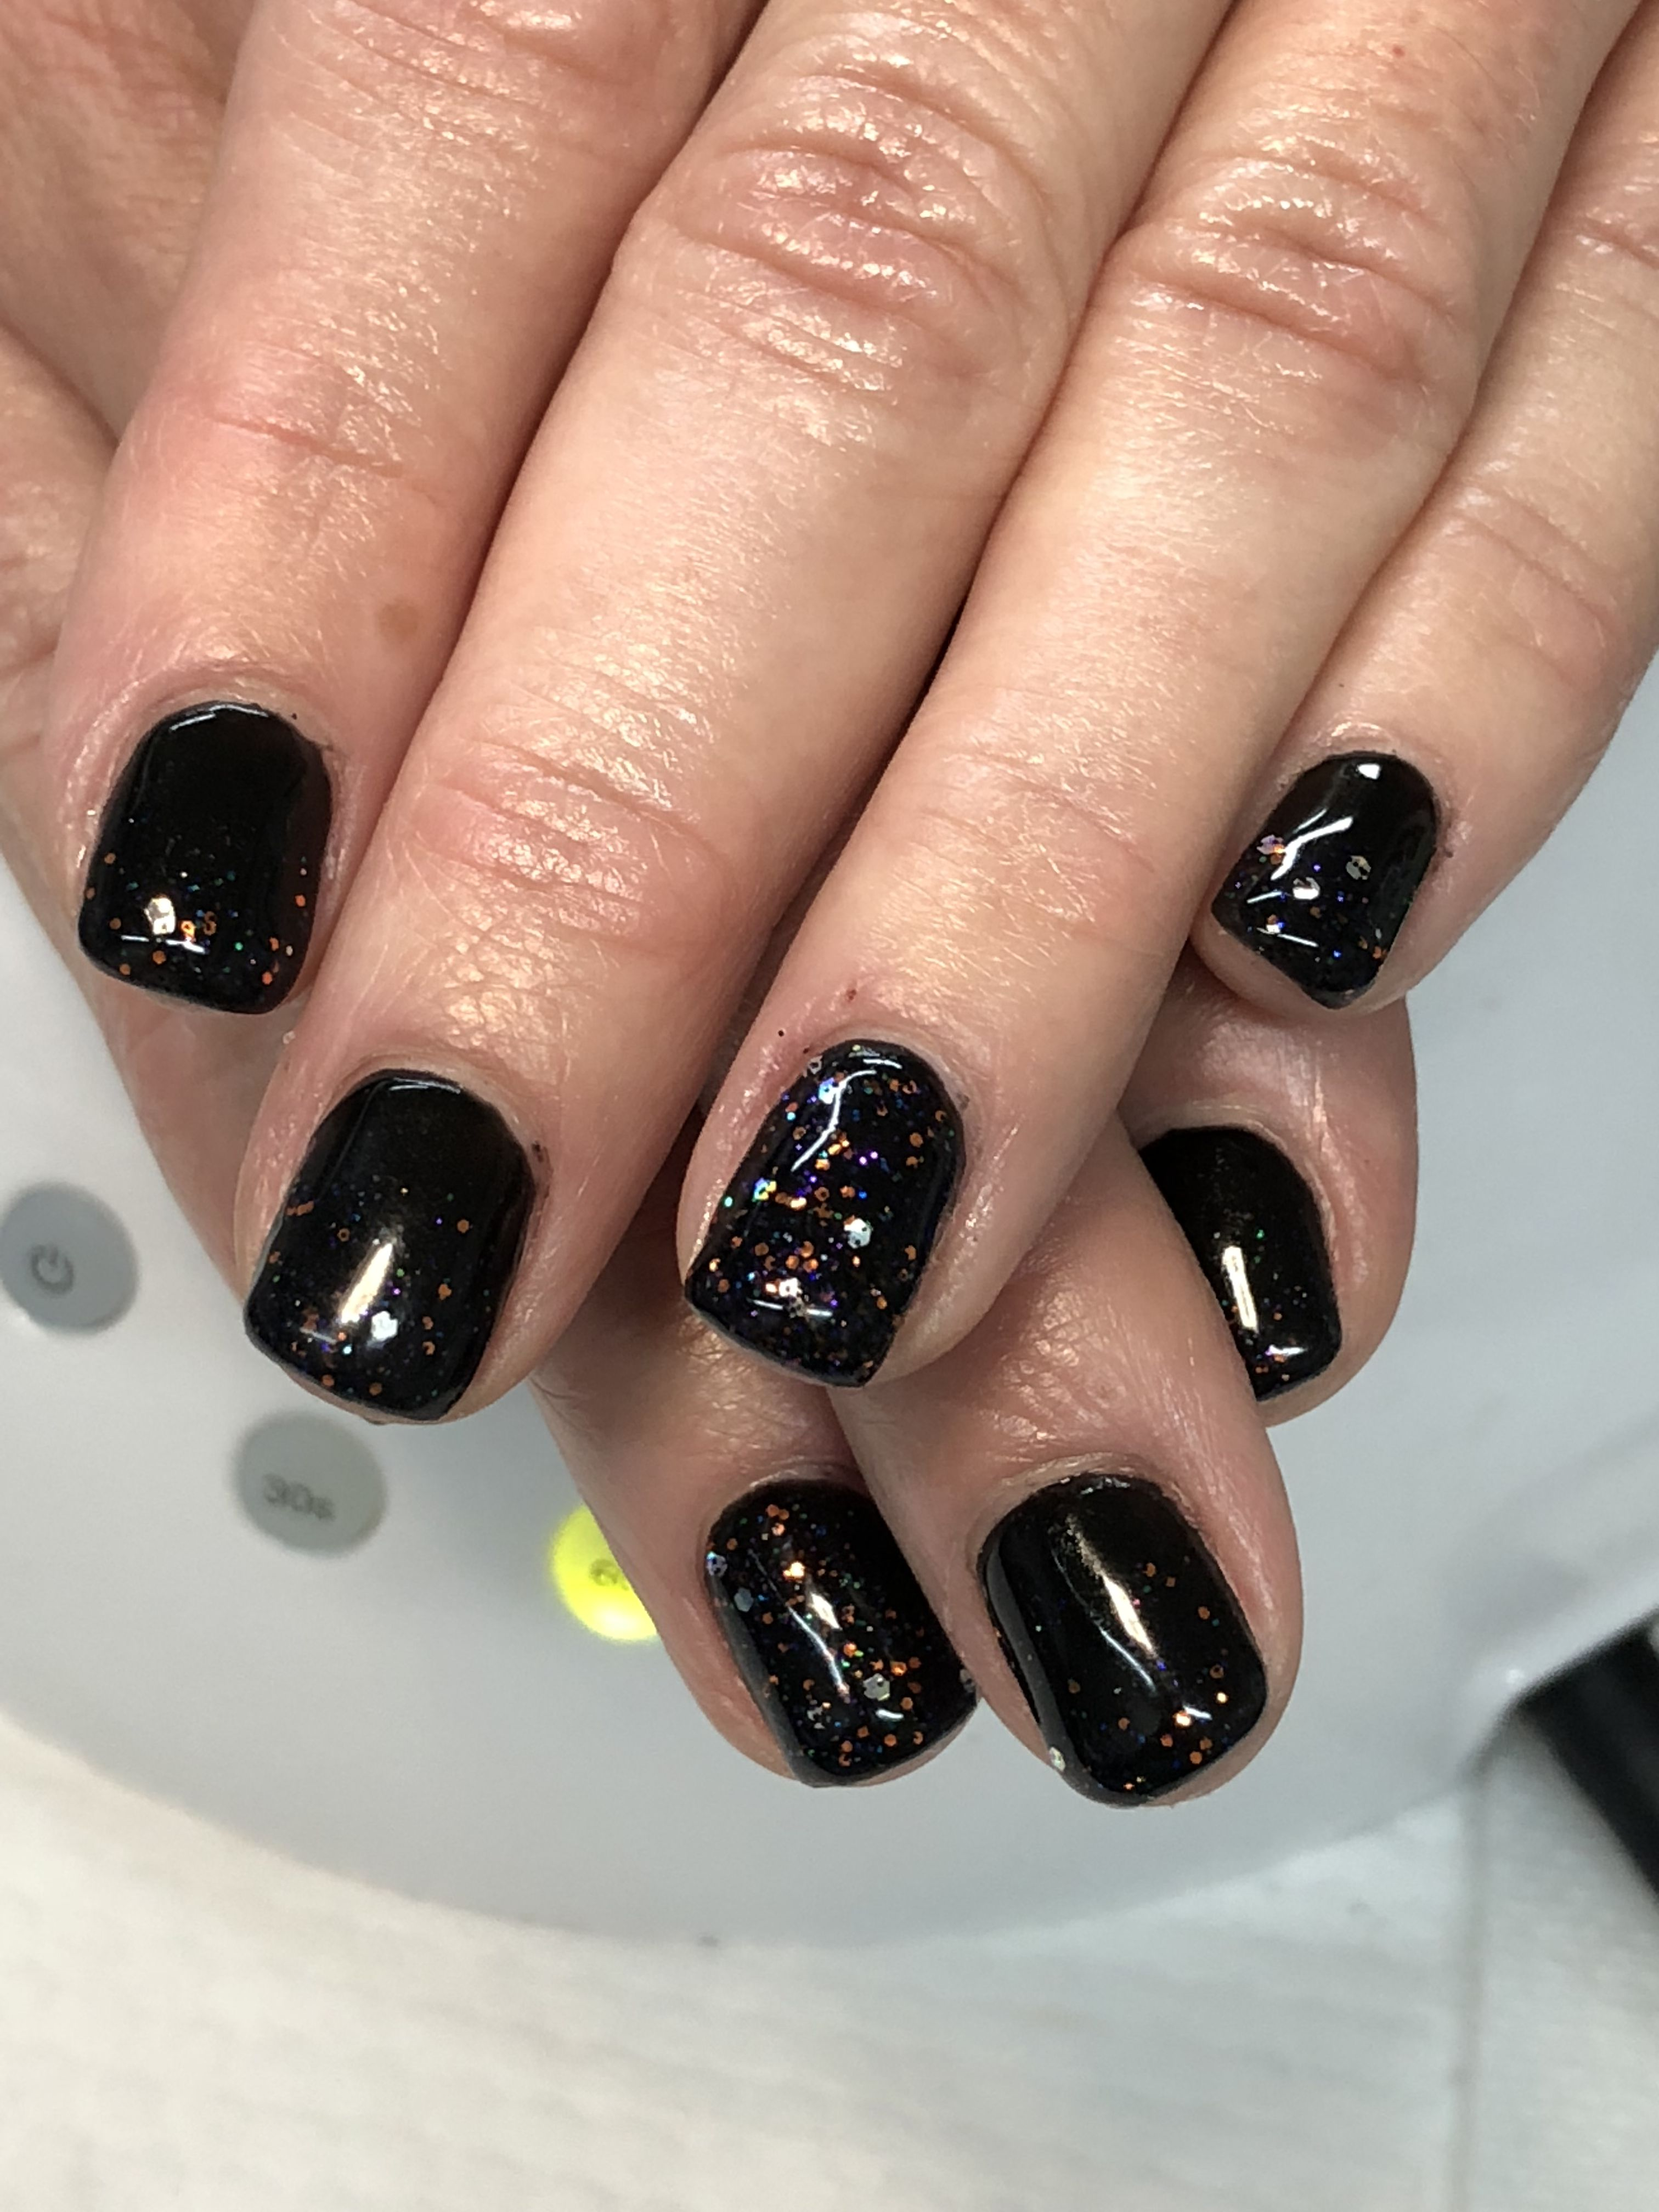 Black Halloween Fall Gel Nails Light Elegance Black Tie Black Magic Gel Nail Light Fall Gel Nails Nail Colors